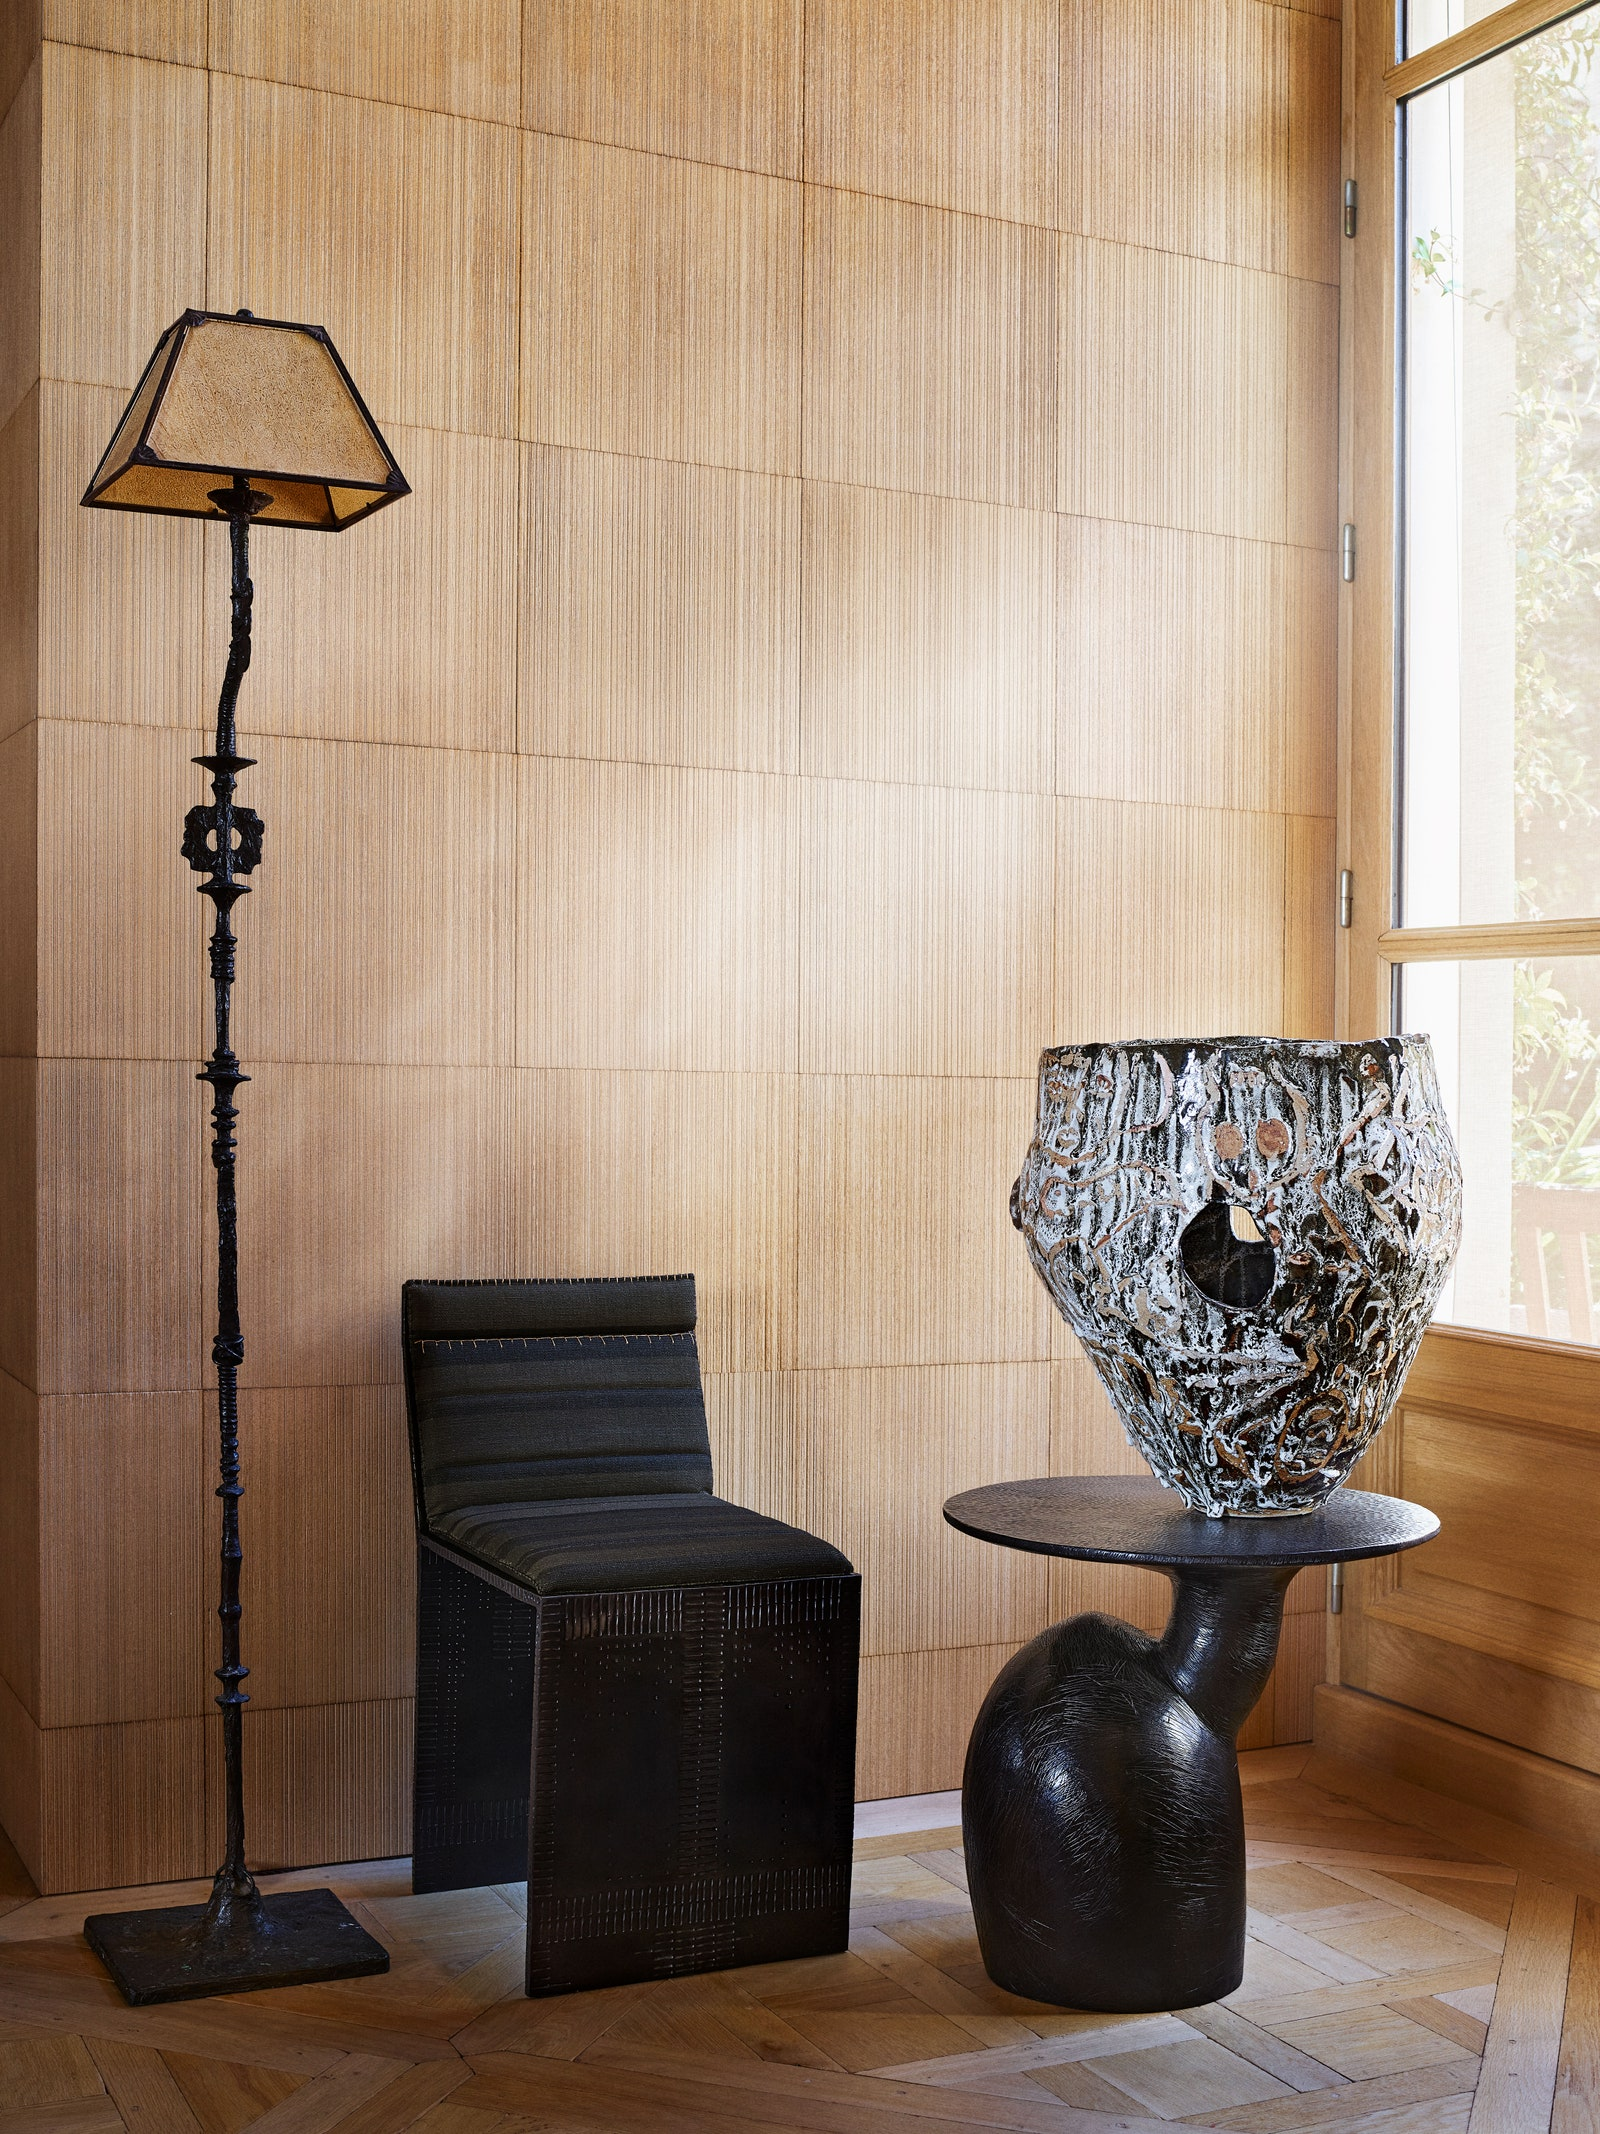 pA ceramic vessel by Roger Herman sits atop a table by Wendell Castle.p